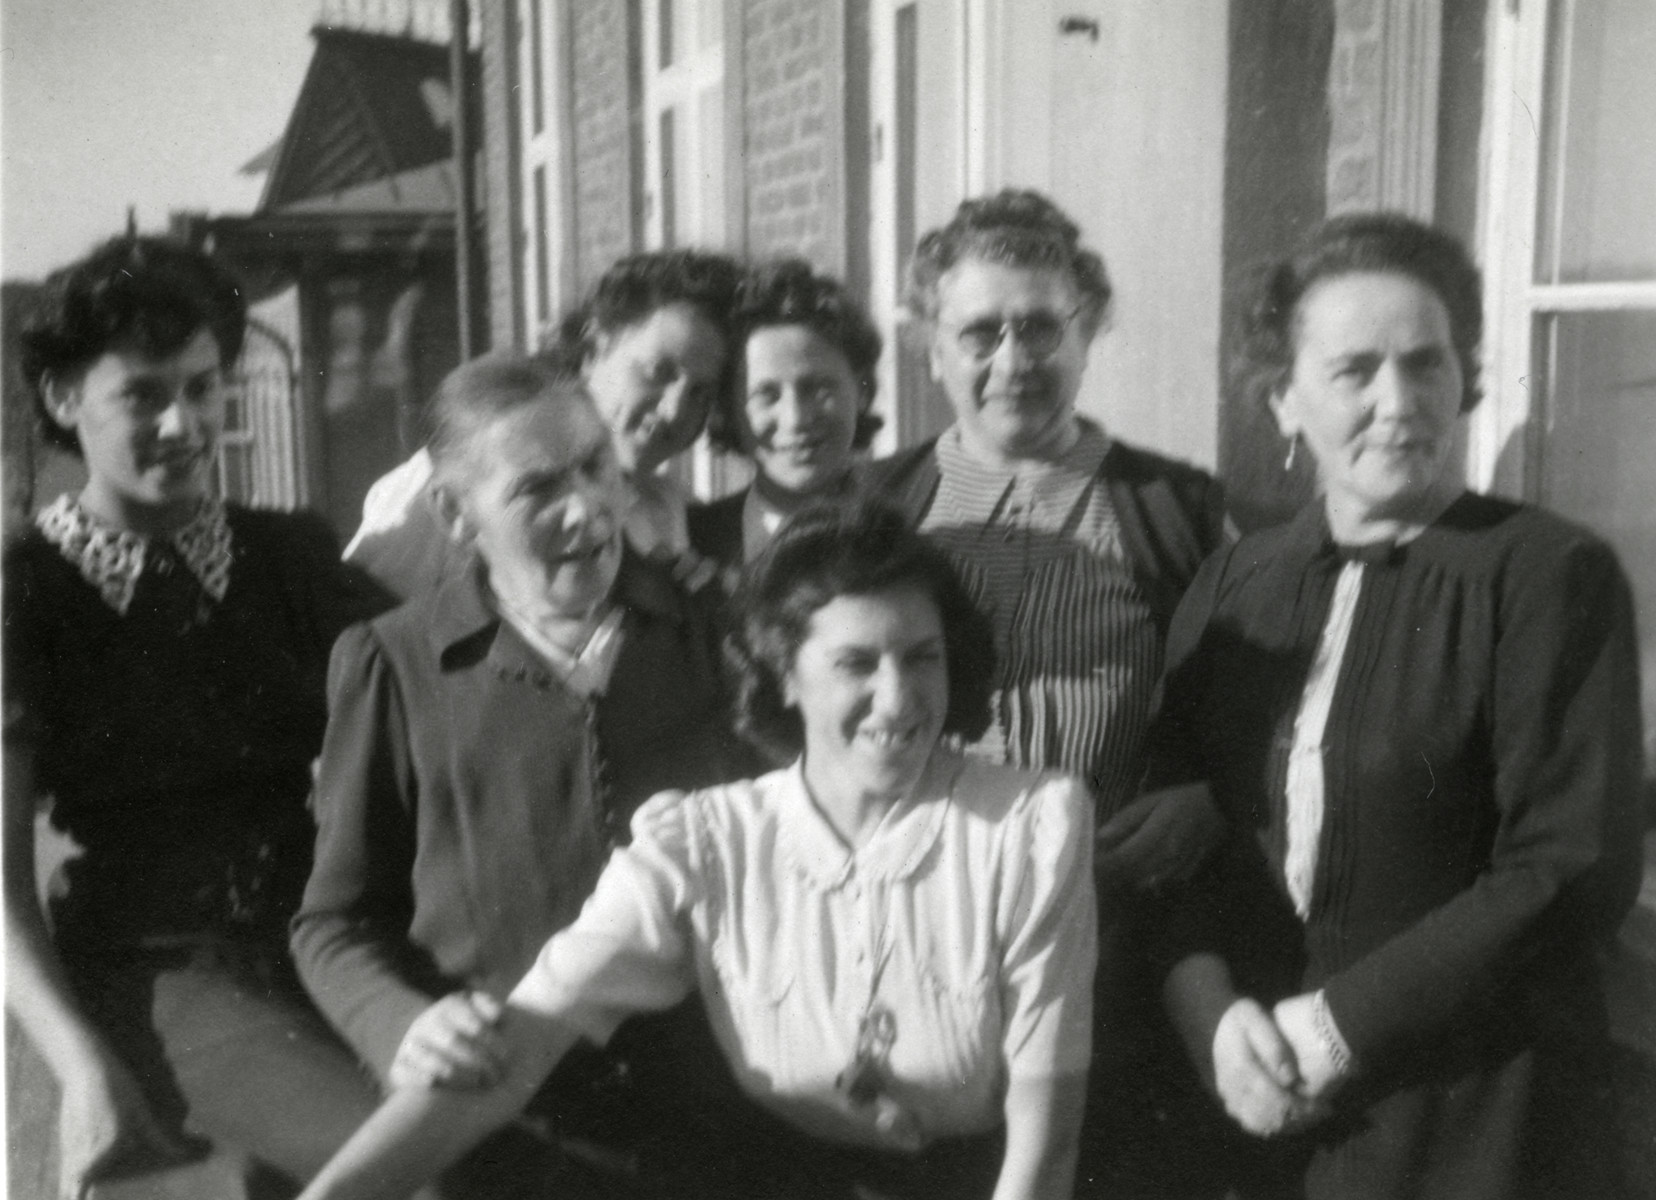 The Newmann family celebrates the engagement of Astrid Newmann to Elias Feigen.  Astrid Newman is in the center.  Also pictured are her sister Rachel, Rachel Feigen and Berta Newman.  The older woman to Astrid's left is a Norwegian Jewish refugee, Mere Abramson.